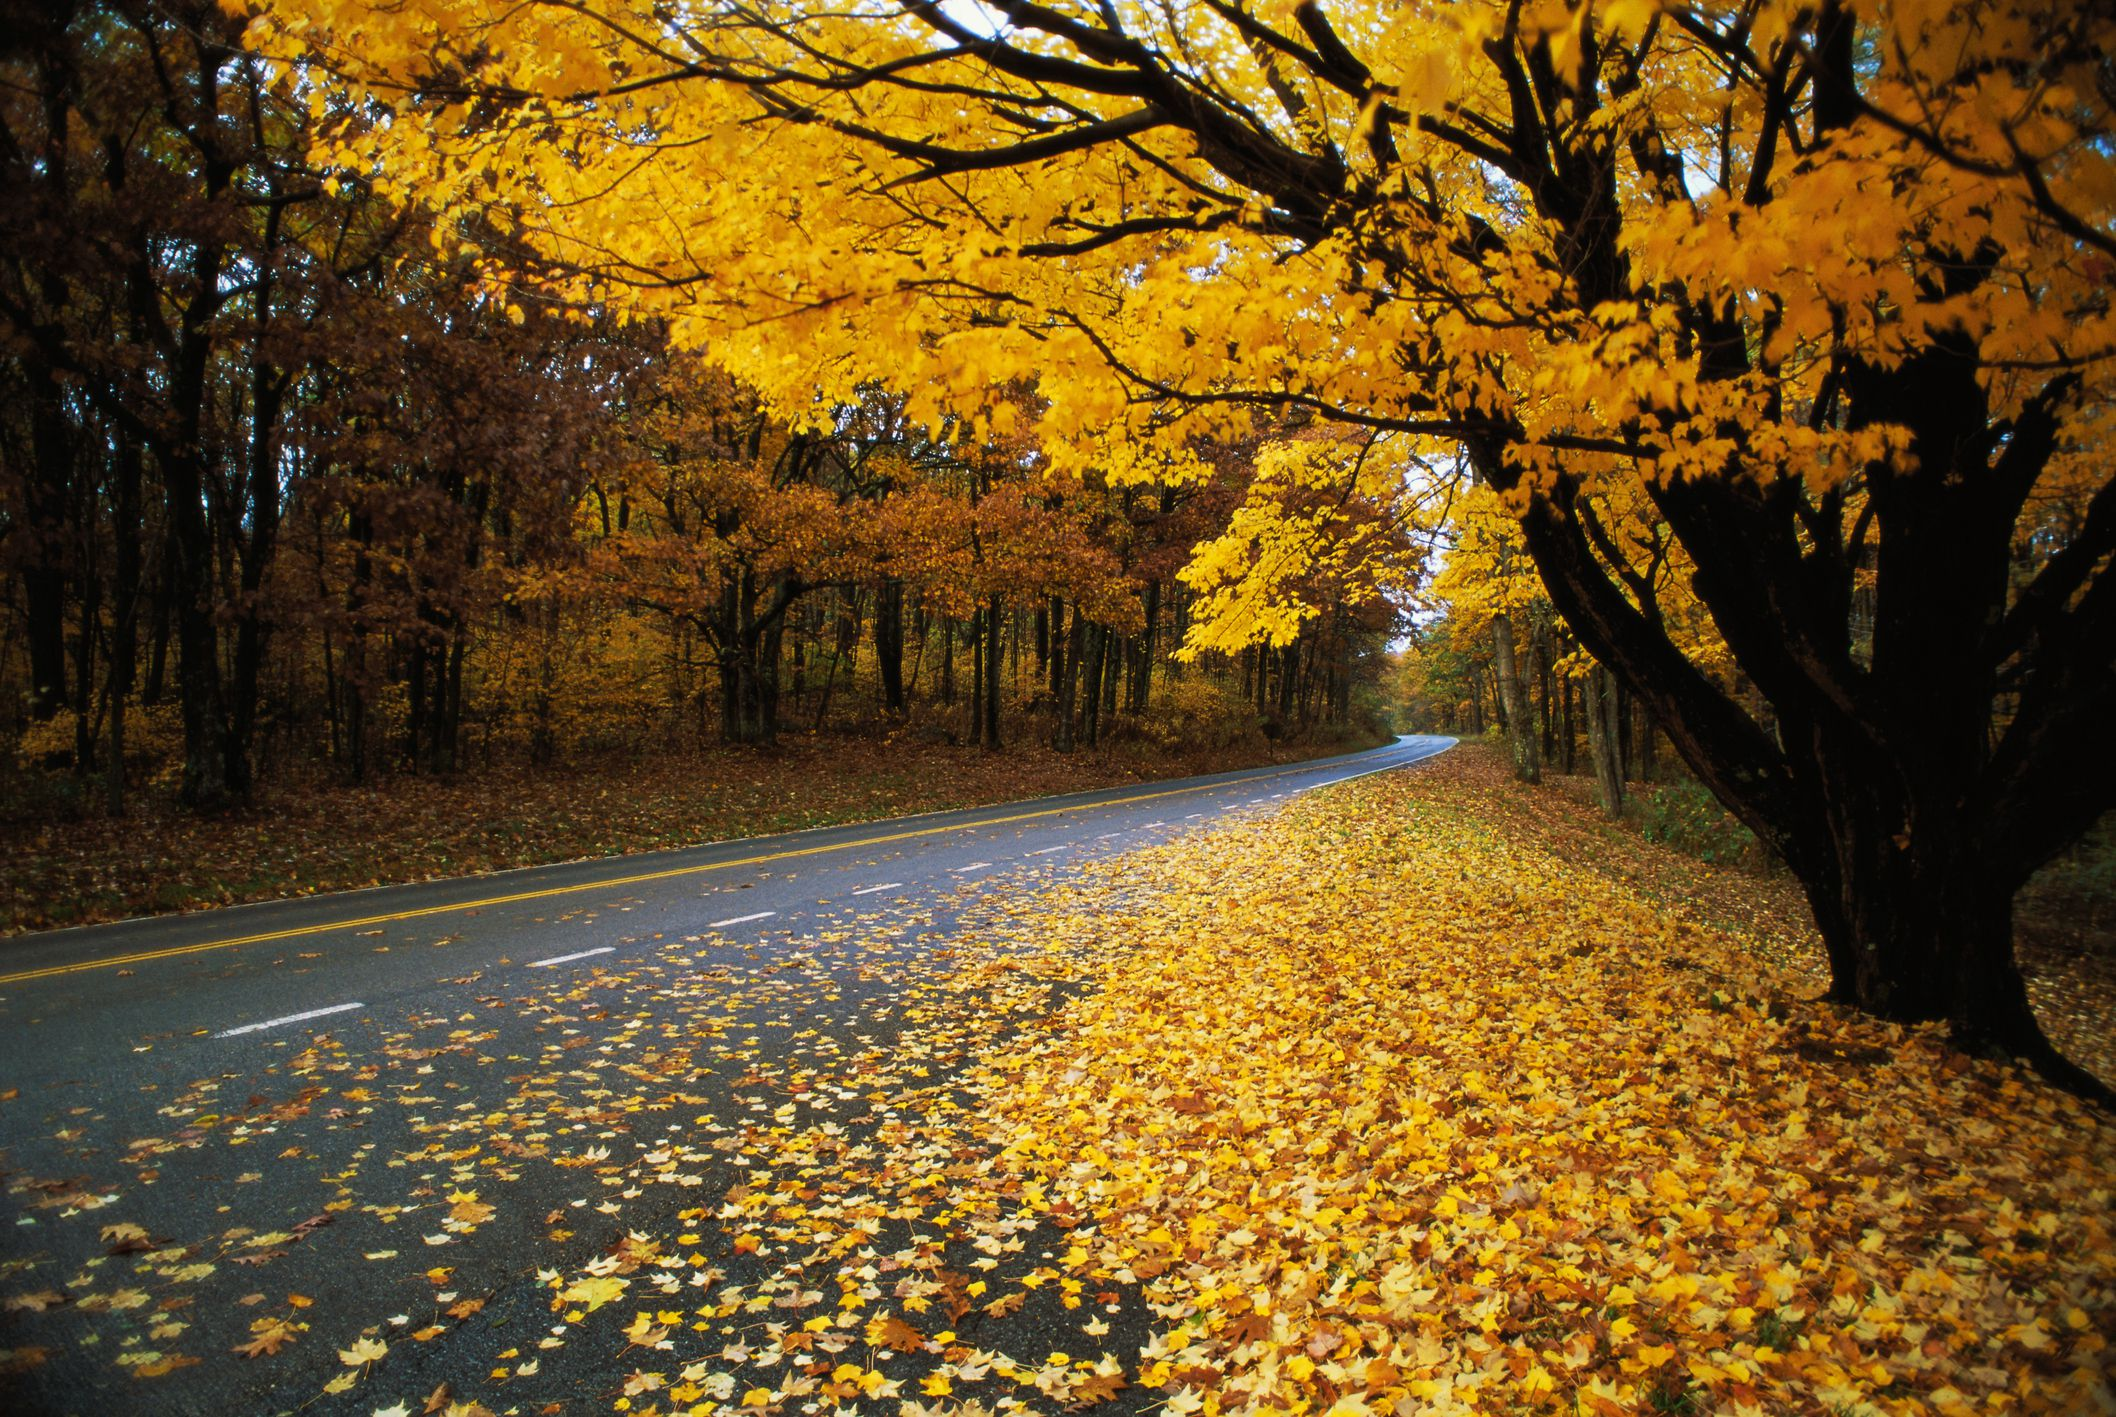 Autumn Leaves on a Rural Road